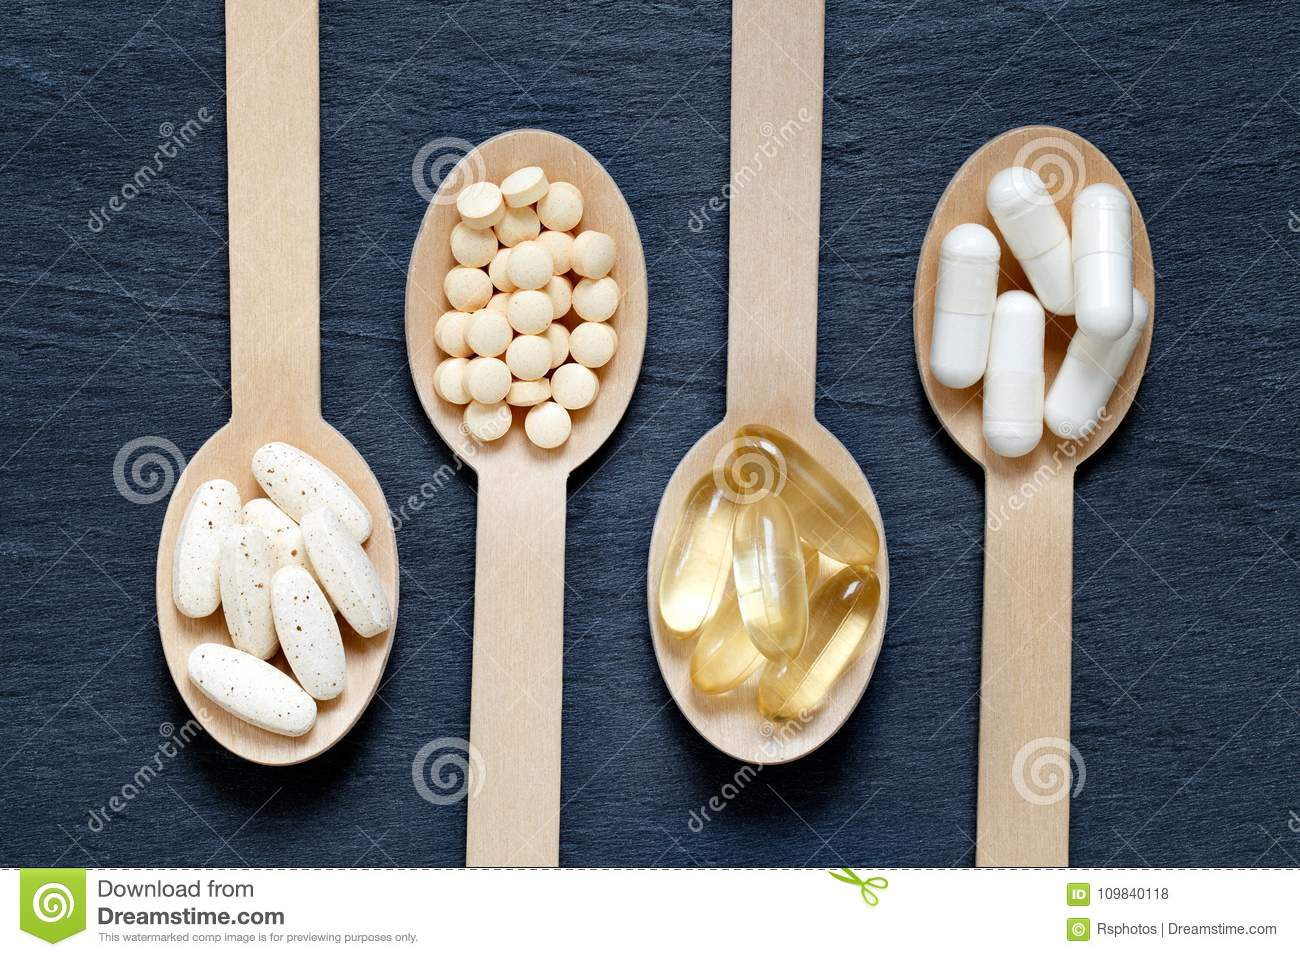 Different healthy supplements on wooden spoons